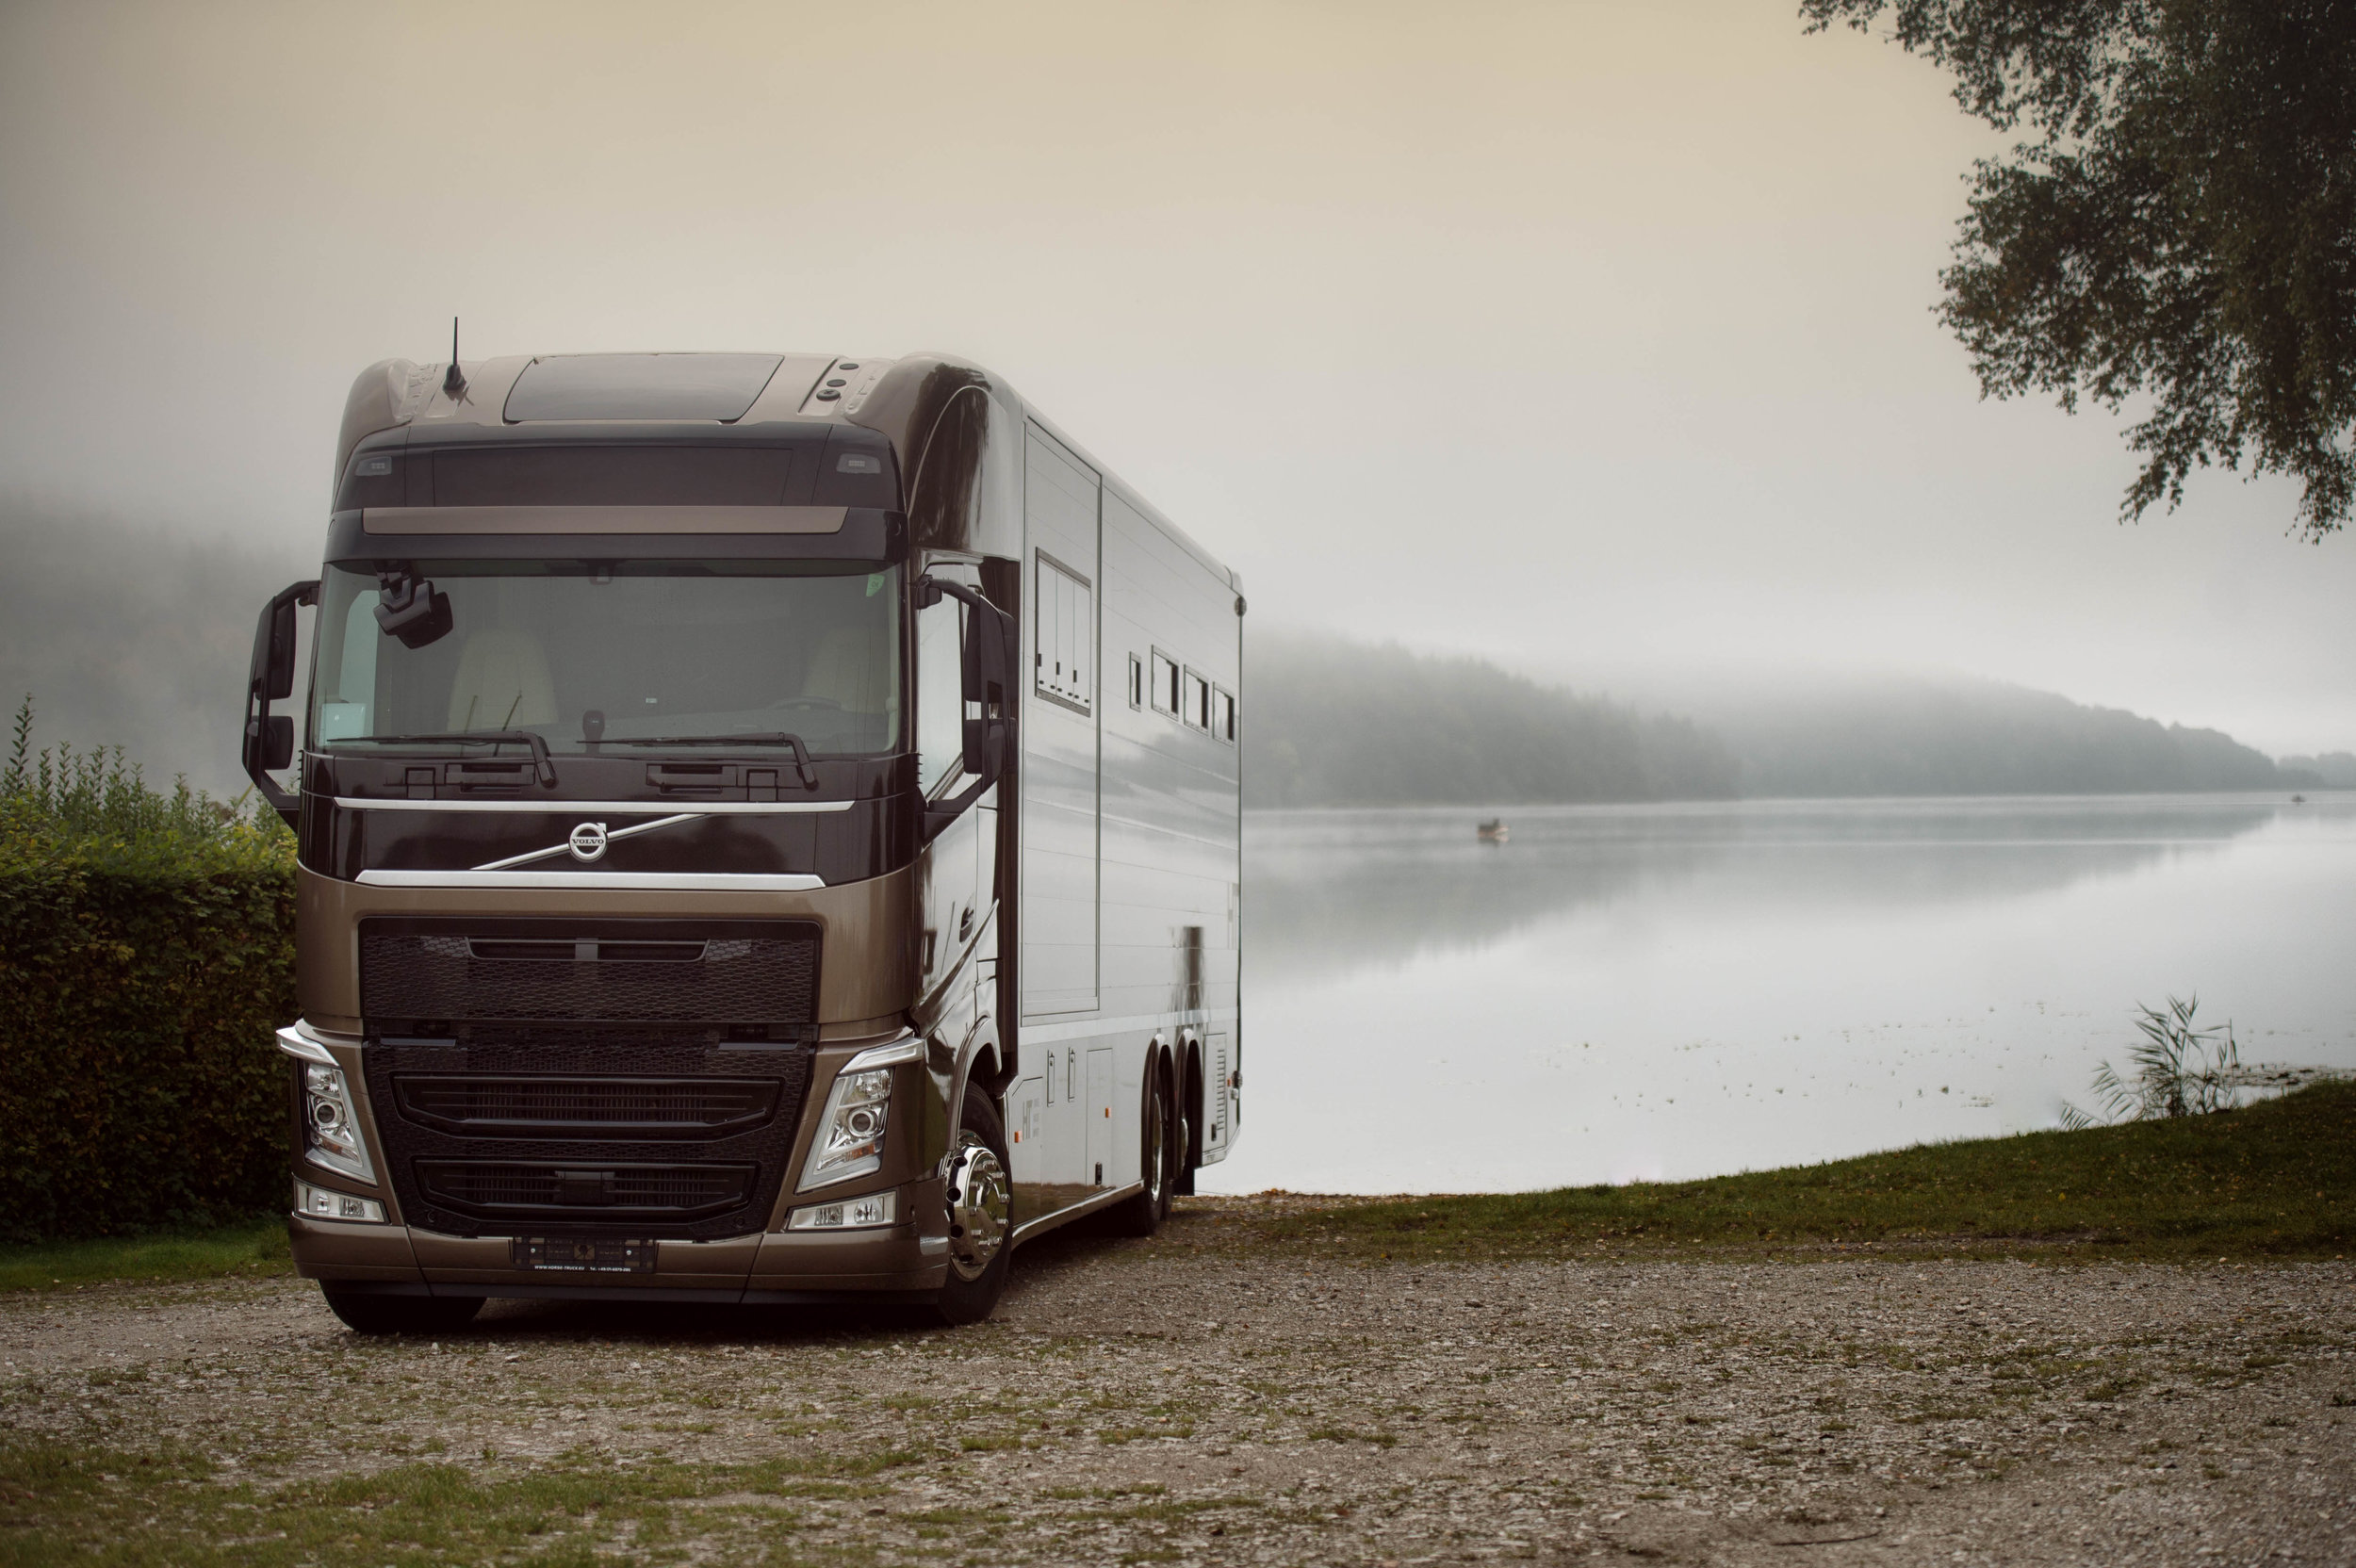 Horse Truck Pop out Volvo Aniko Towers Photo Oct17-139.jpg